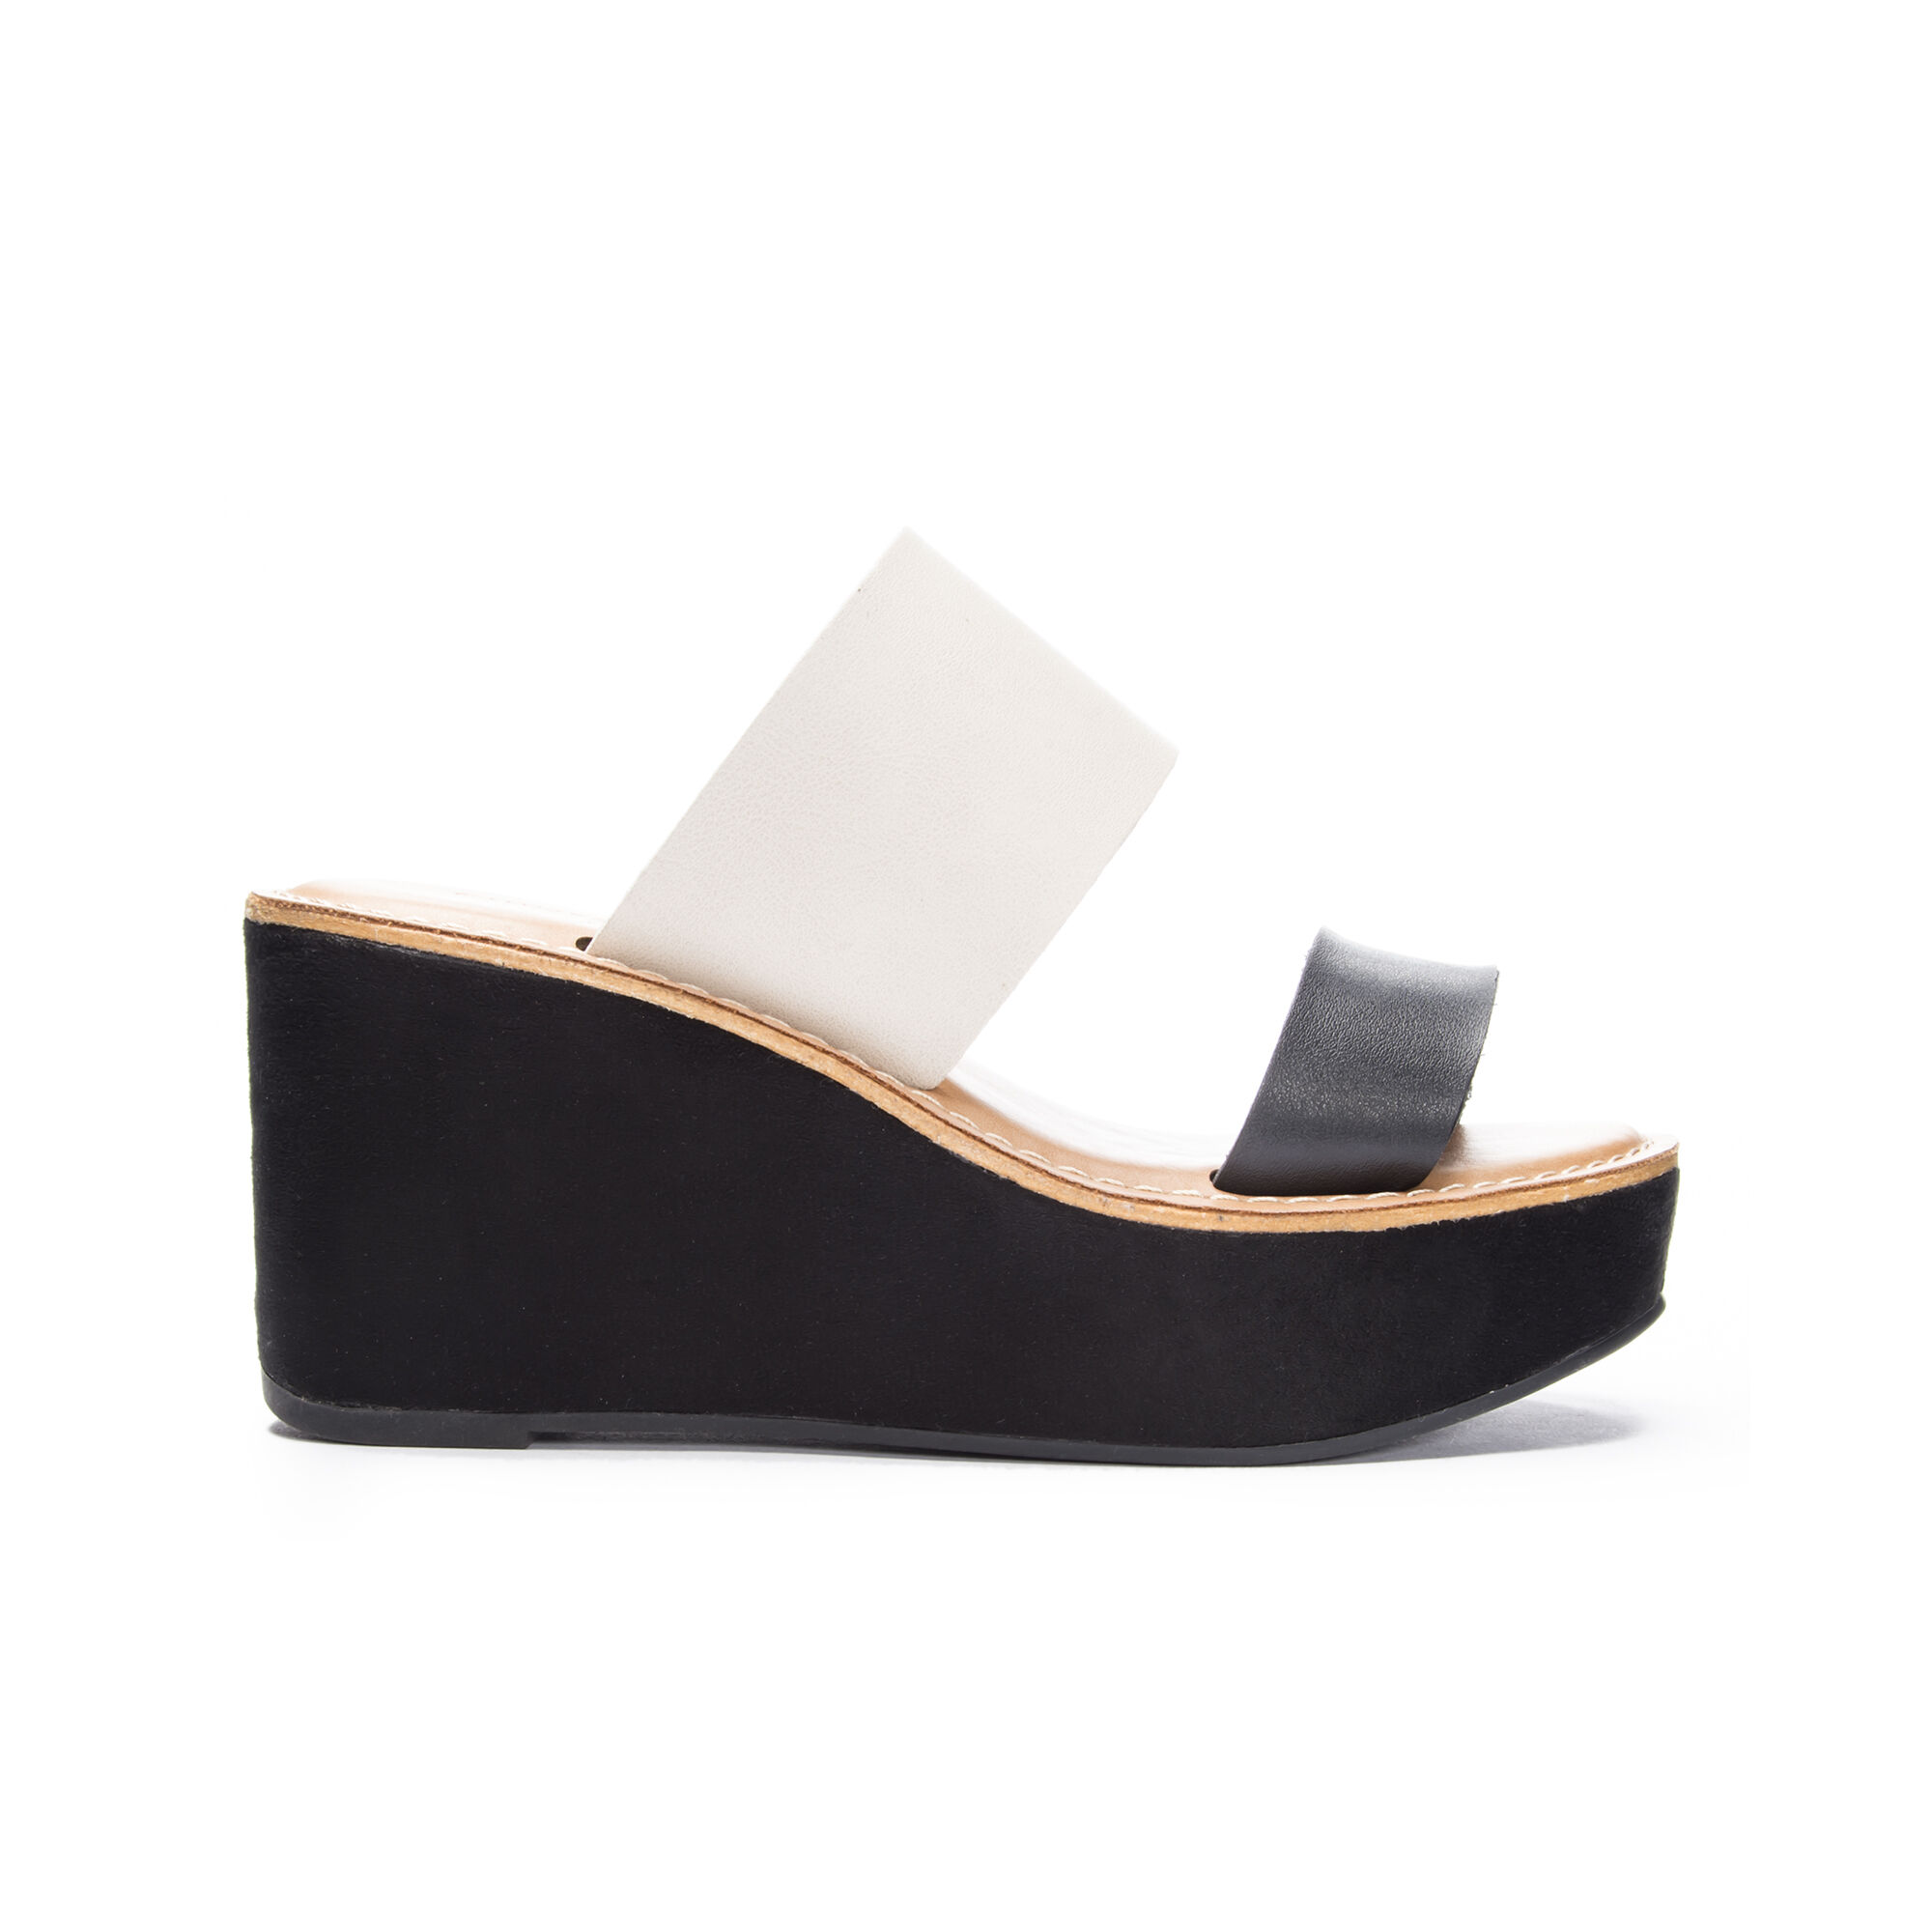 5ad2c048692 Chinese Laundry Ollie 2 Smooth Slide Sandal